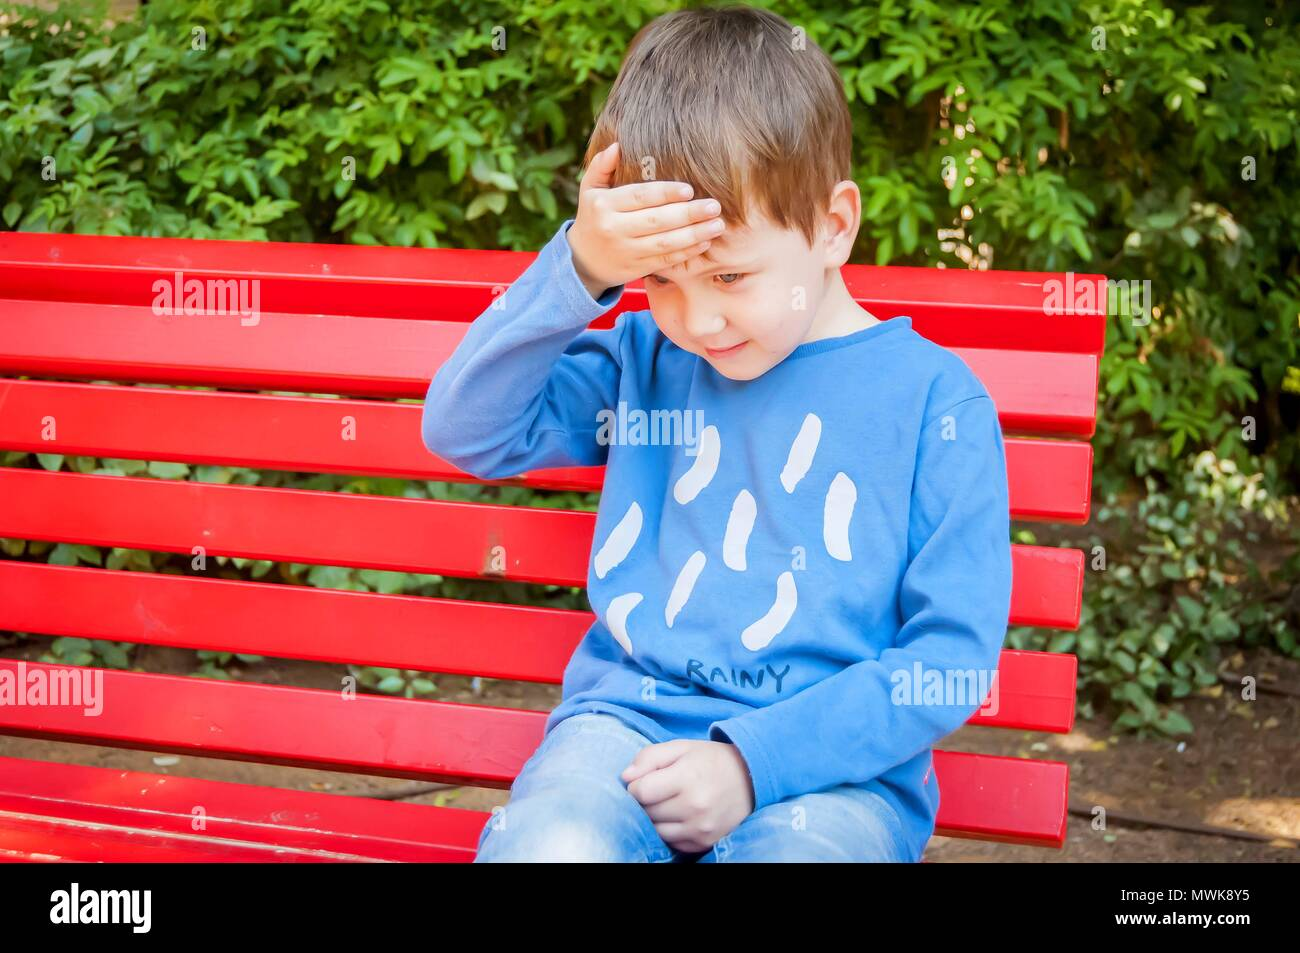 Cute optimistic Caucasian child puts a hand on his forehead as if he has a head ache stock image. Grownup child - Stock Image